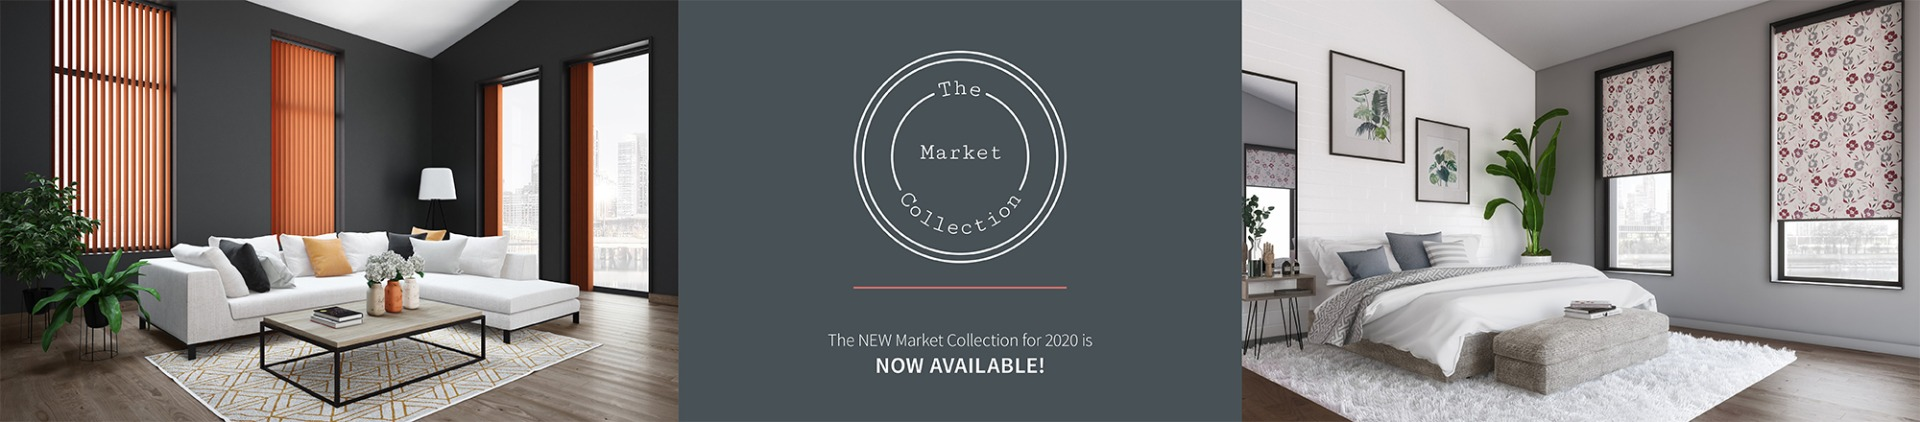 Market Collection 2020 Homepage Banner